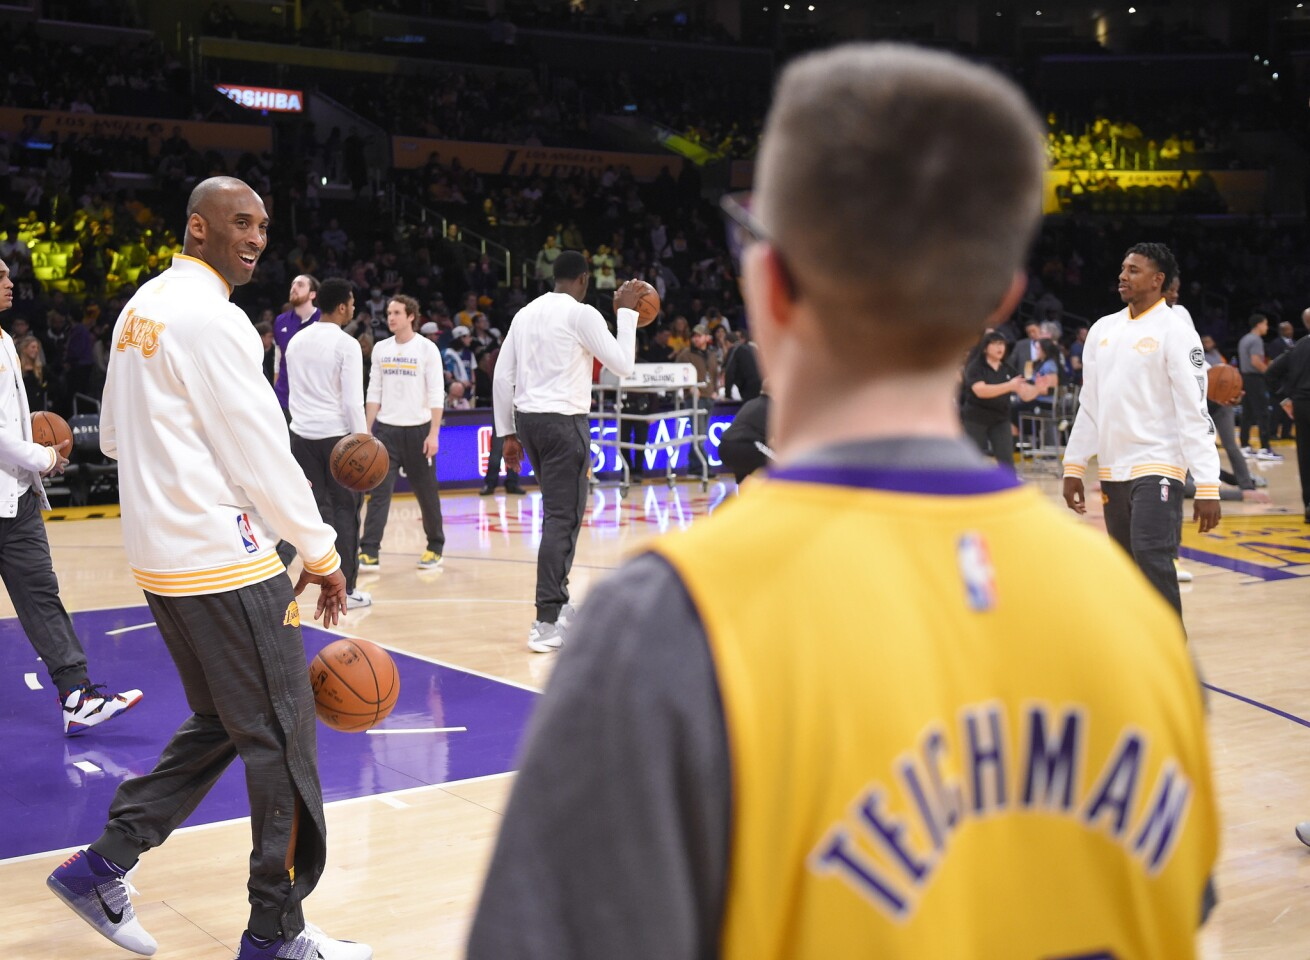 Los Angeles Lakers forward Kobe Bryant, left, talks with Make-A-Wish recipient, Yitzi Tiechman prior to an NBA basketball game against the Charlotte Hornets, Sunday, Jan. 31, 2016, in Los Angeles. The Lakers signed Teichman to a one day contract with the Lakers prior to the game. (AP Photo/Mark J. Terrill)